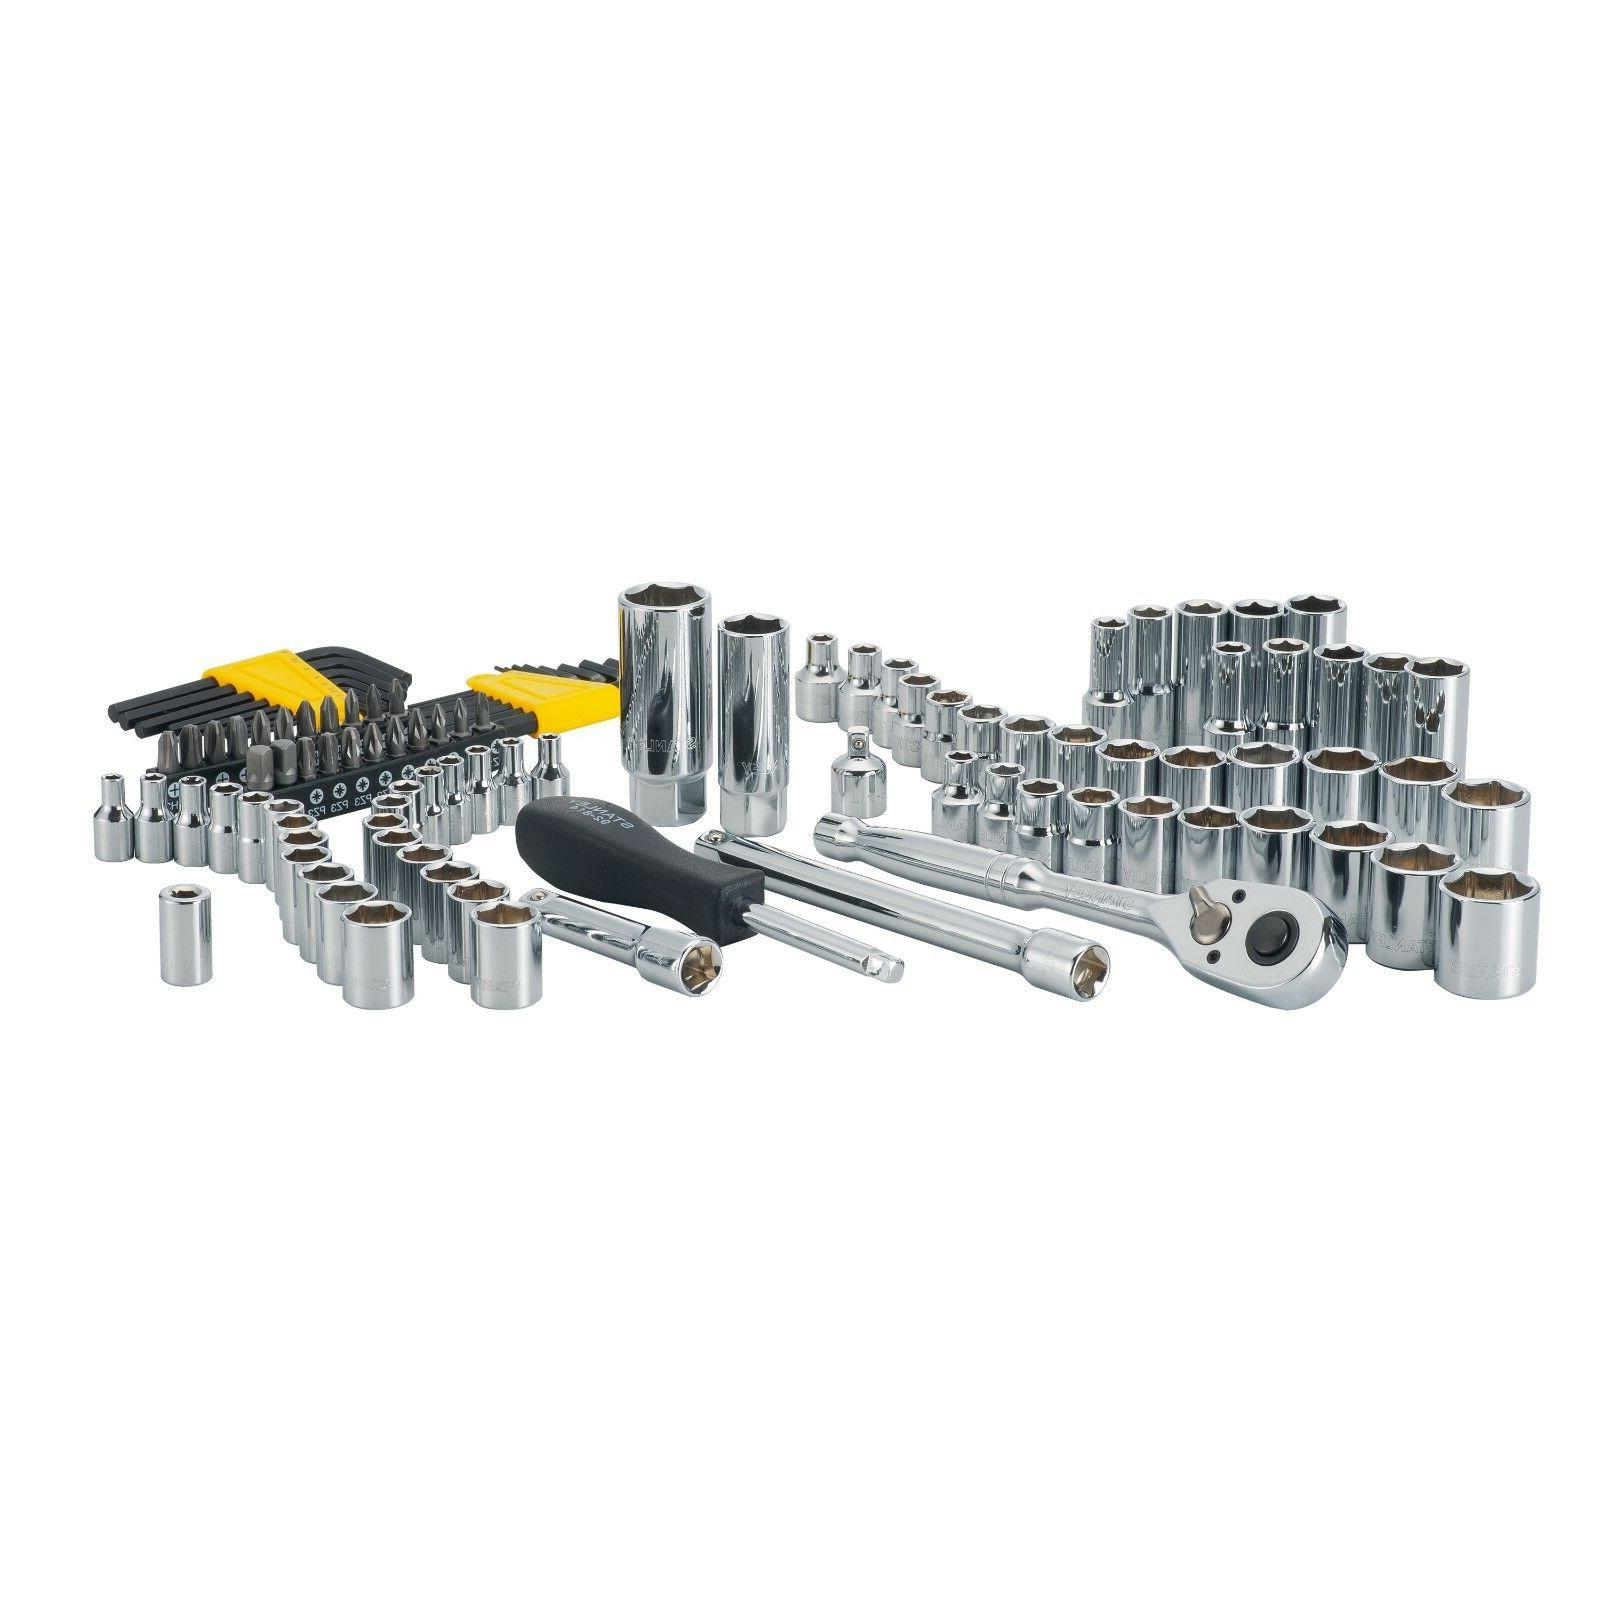 105 pc chrome sae metric mechanics tool